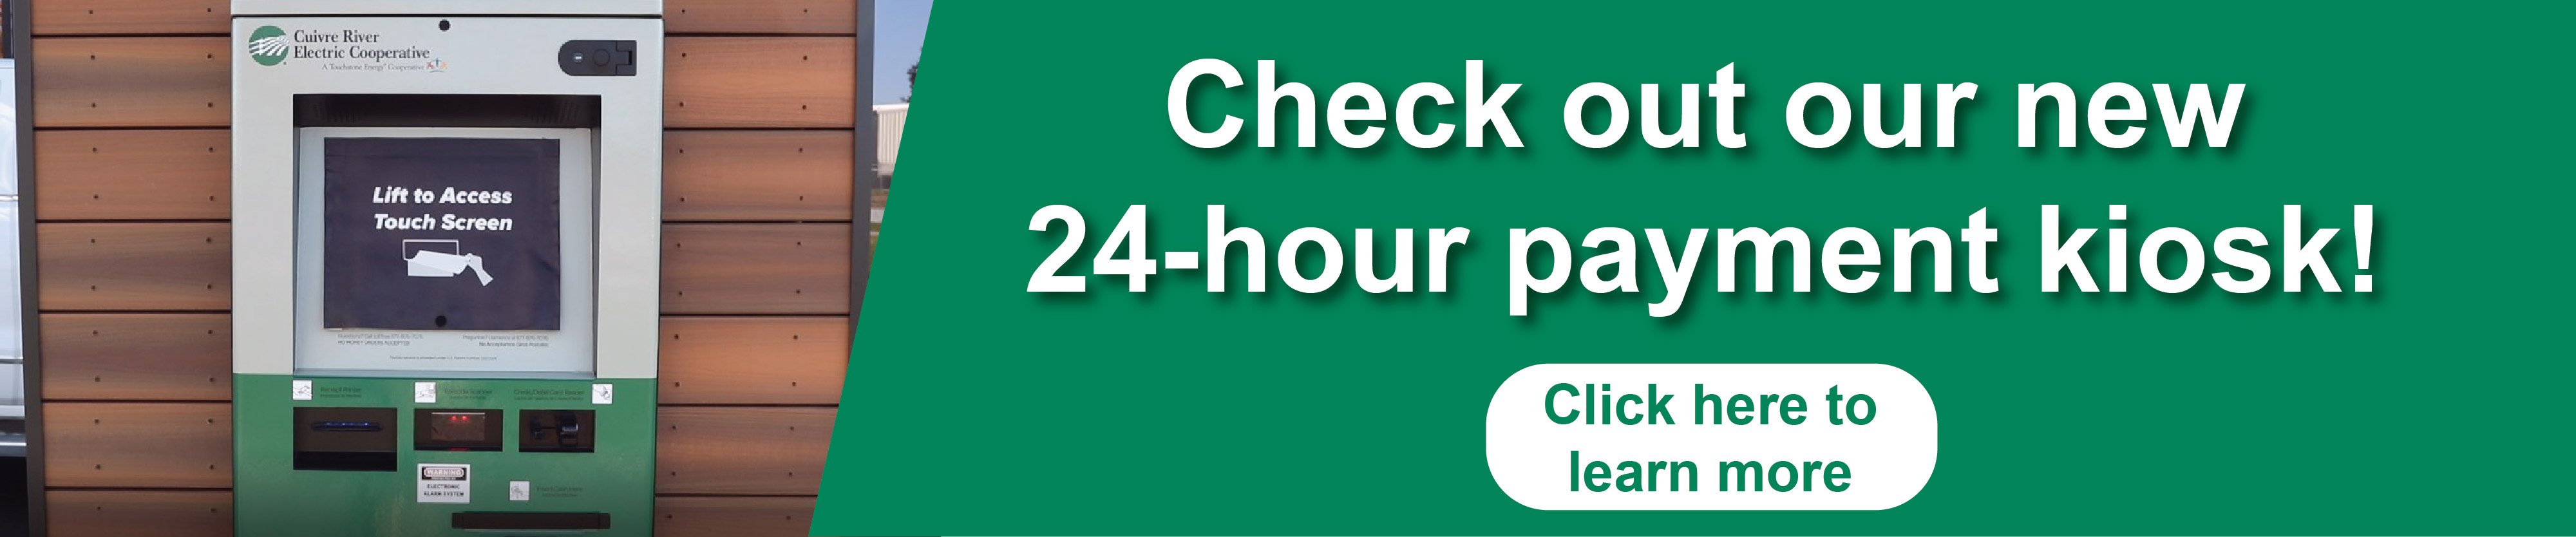 Click here to check out our new 24 hour payment kiosk